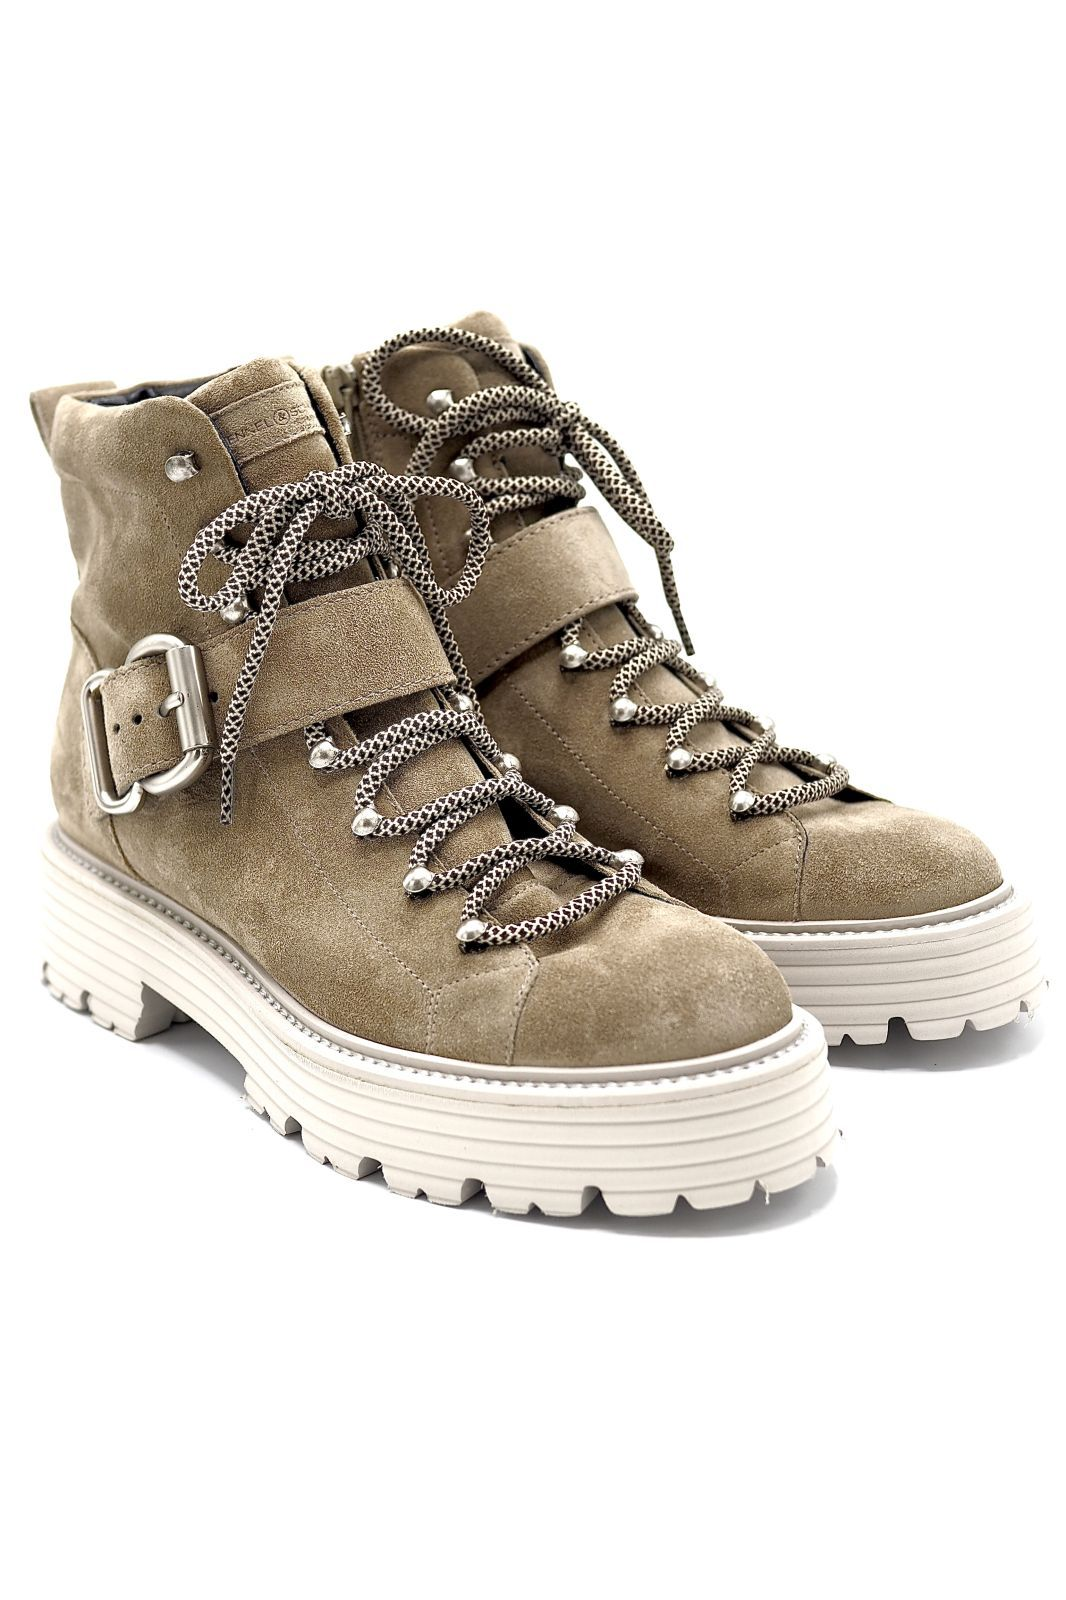 Kennel&Schmenger bottine Taupe femmes (K&S-Biker + boucle - 41-34540 Biker daim taupe clai) - Marine | Much more than shoes